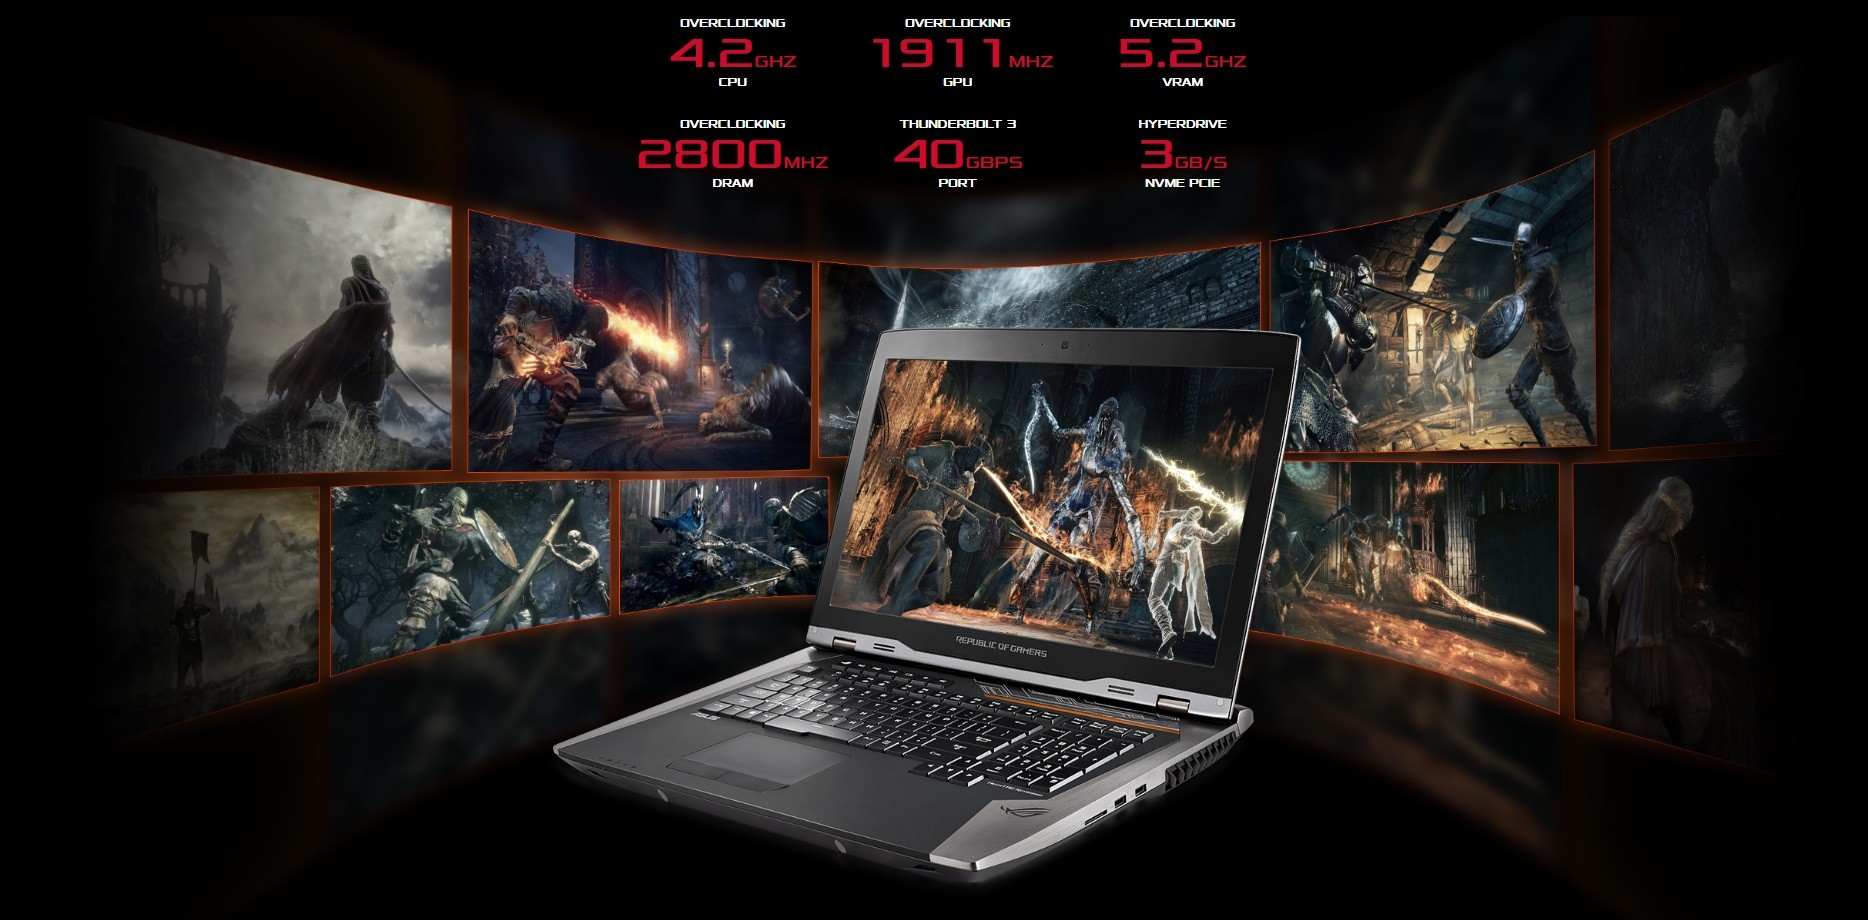 Download Drivers for ASUS' Republic of Gamers G800VI Notebook